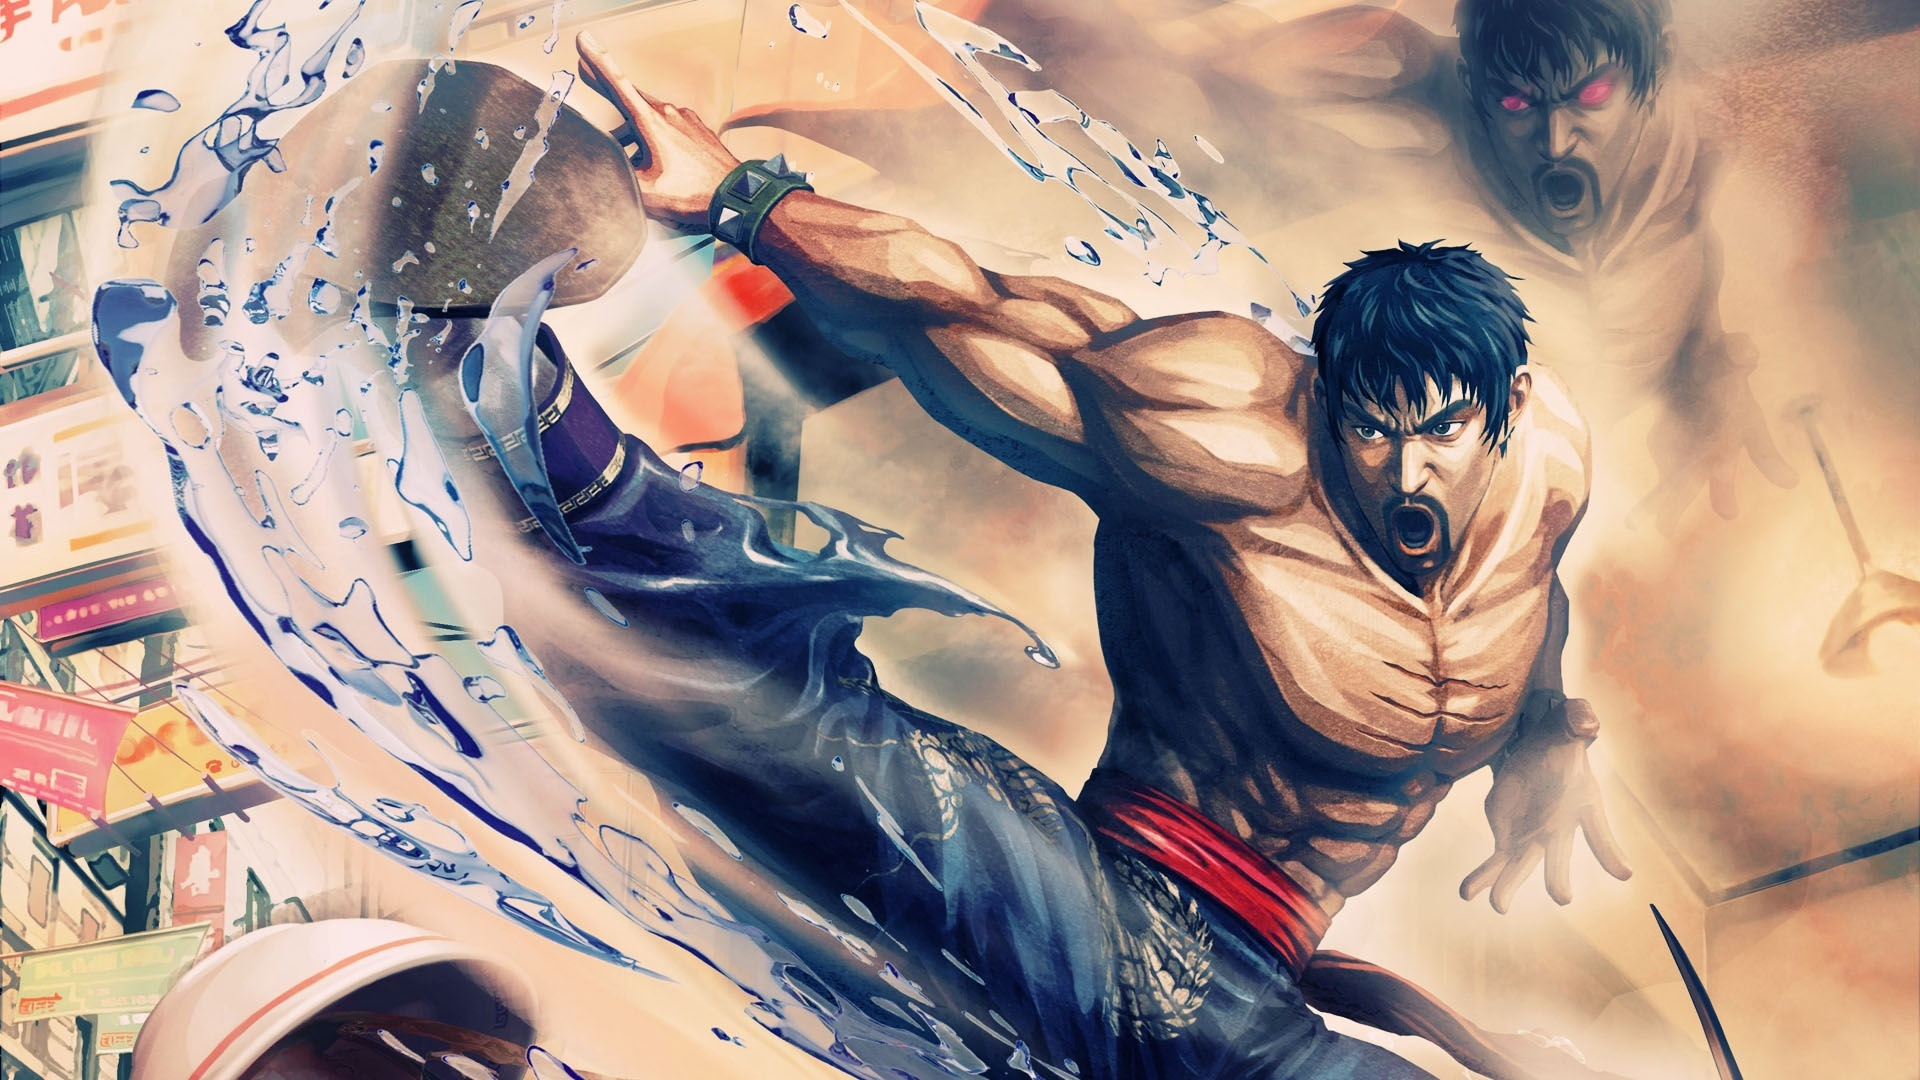 Wallpaper Street Fighter X Tekken 1920x1080 Full Hd 2k Picture Image